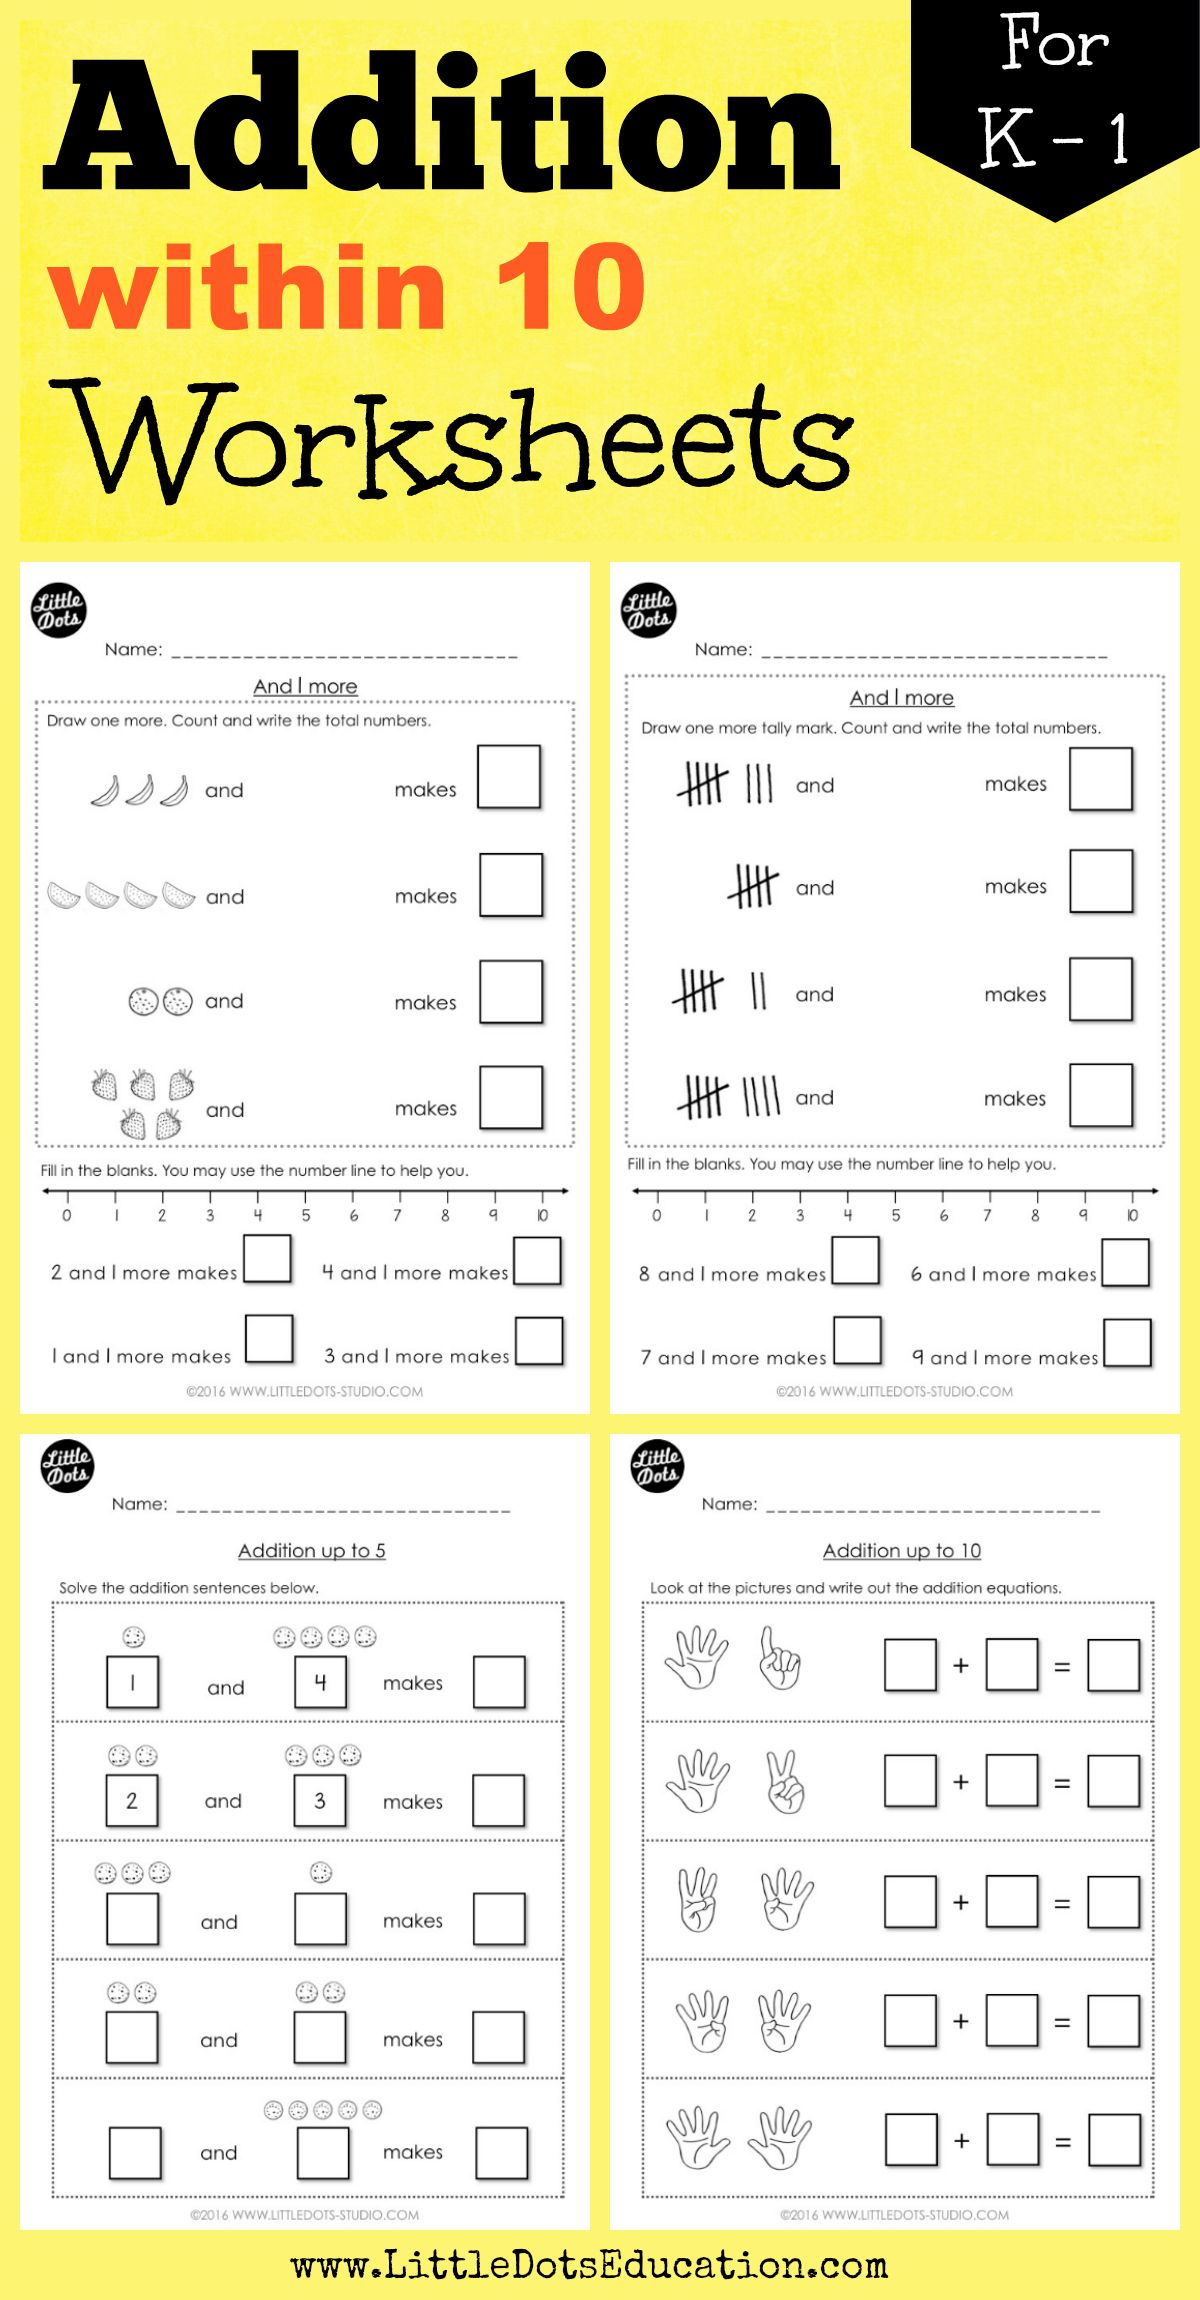 Kindergarten Addition Within 10 Worksheets And Activities Kindergarten Math Addition Kindergarten Math Worksheets Addition Kindergarten Math Facts [ 2300 x 1200 Pixel ]